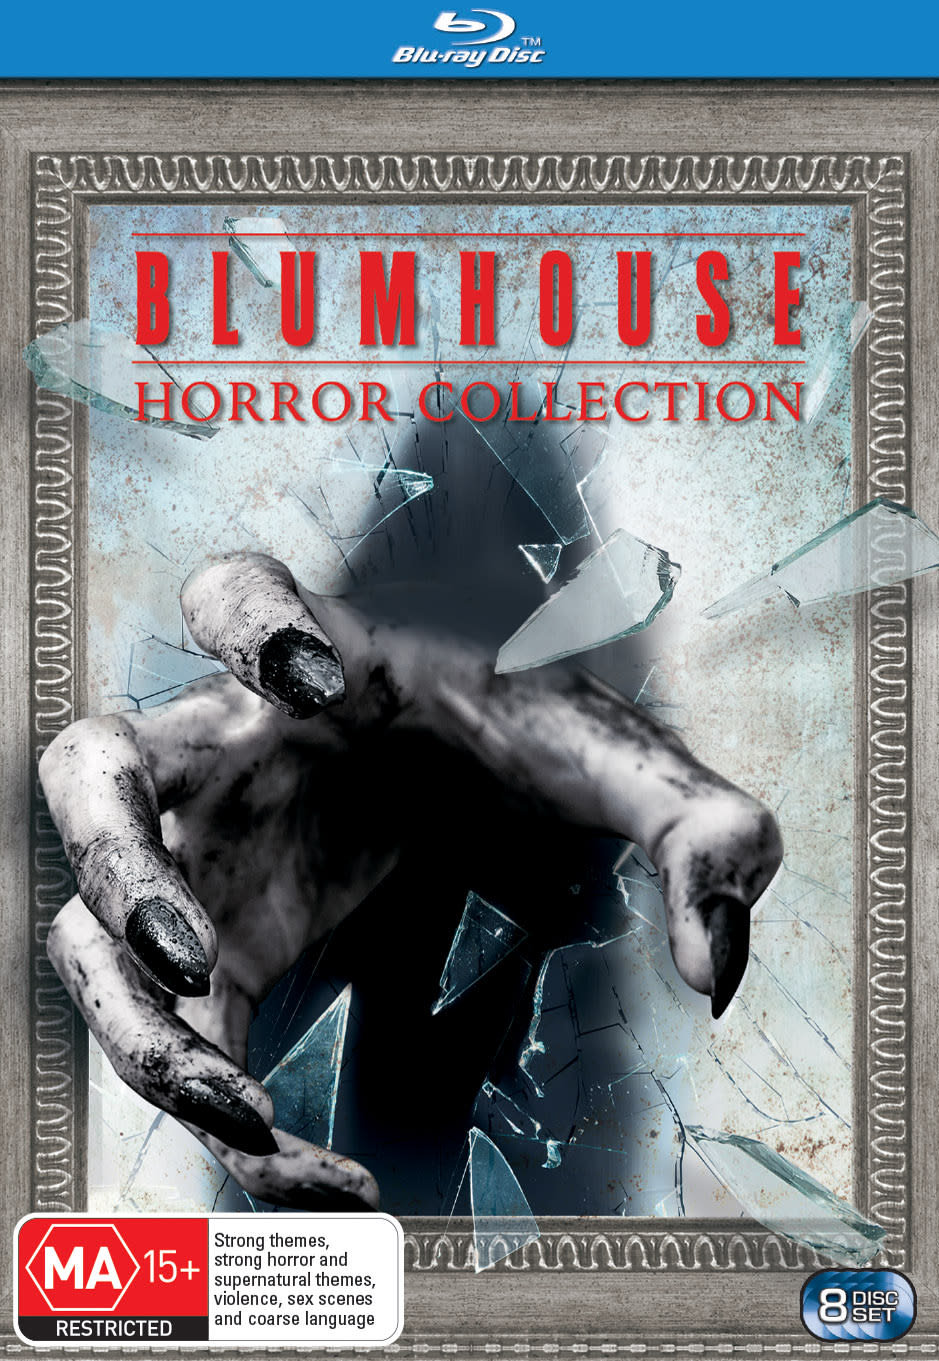 Blumhouse Horror Collection [Blu-ray]